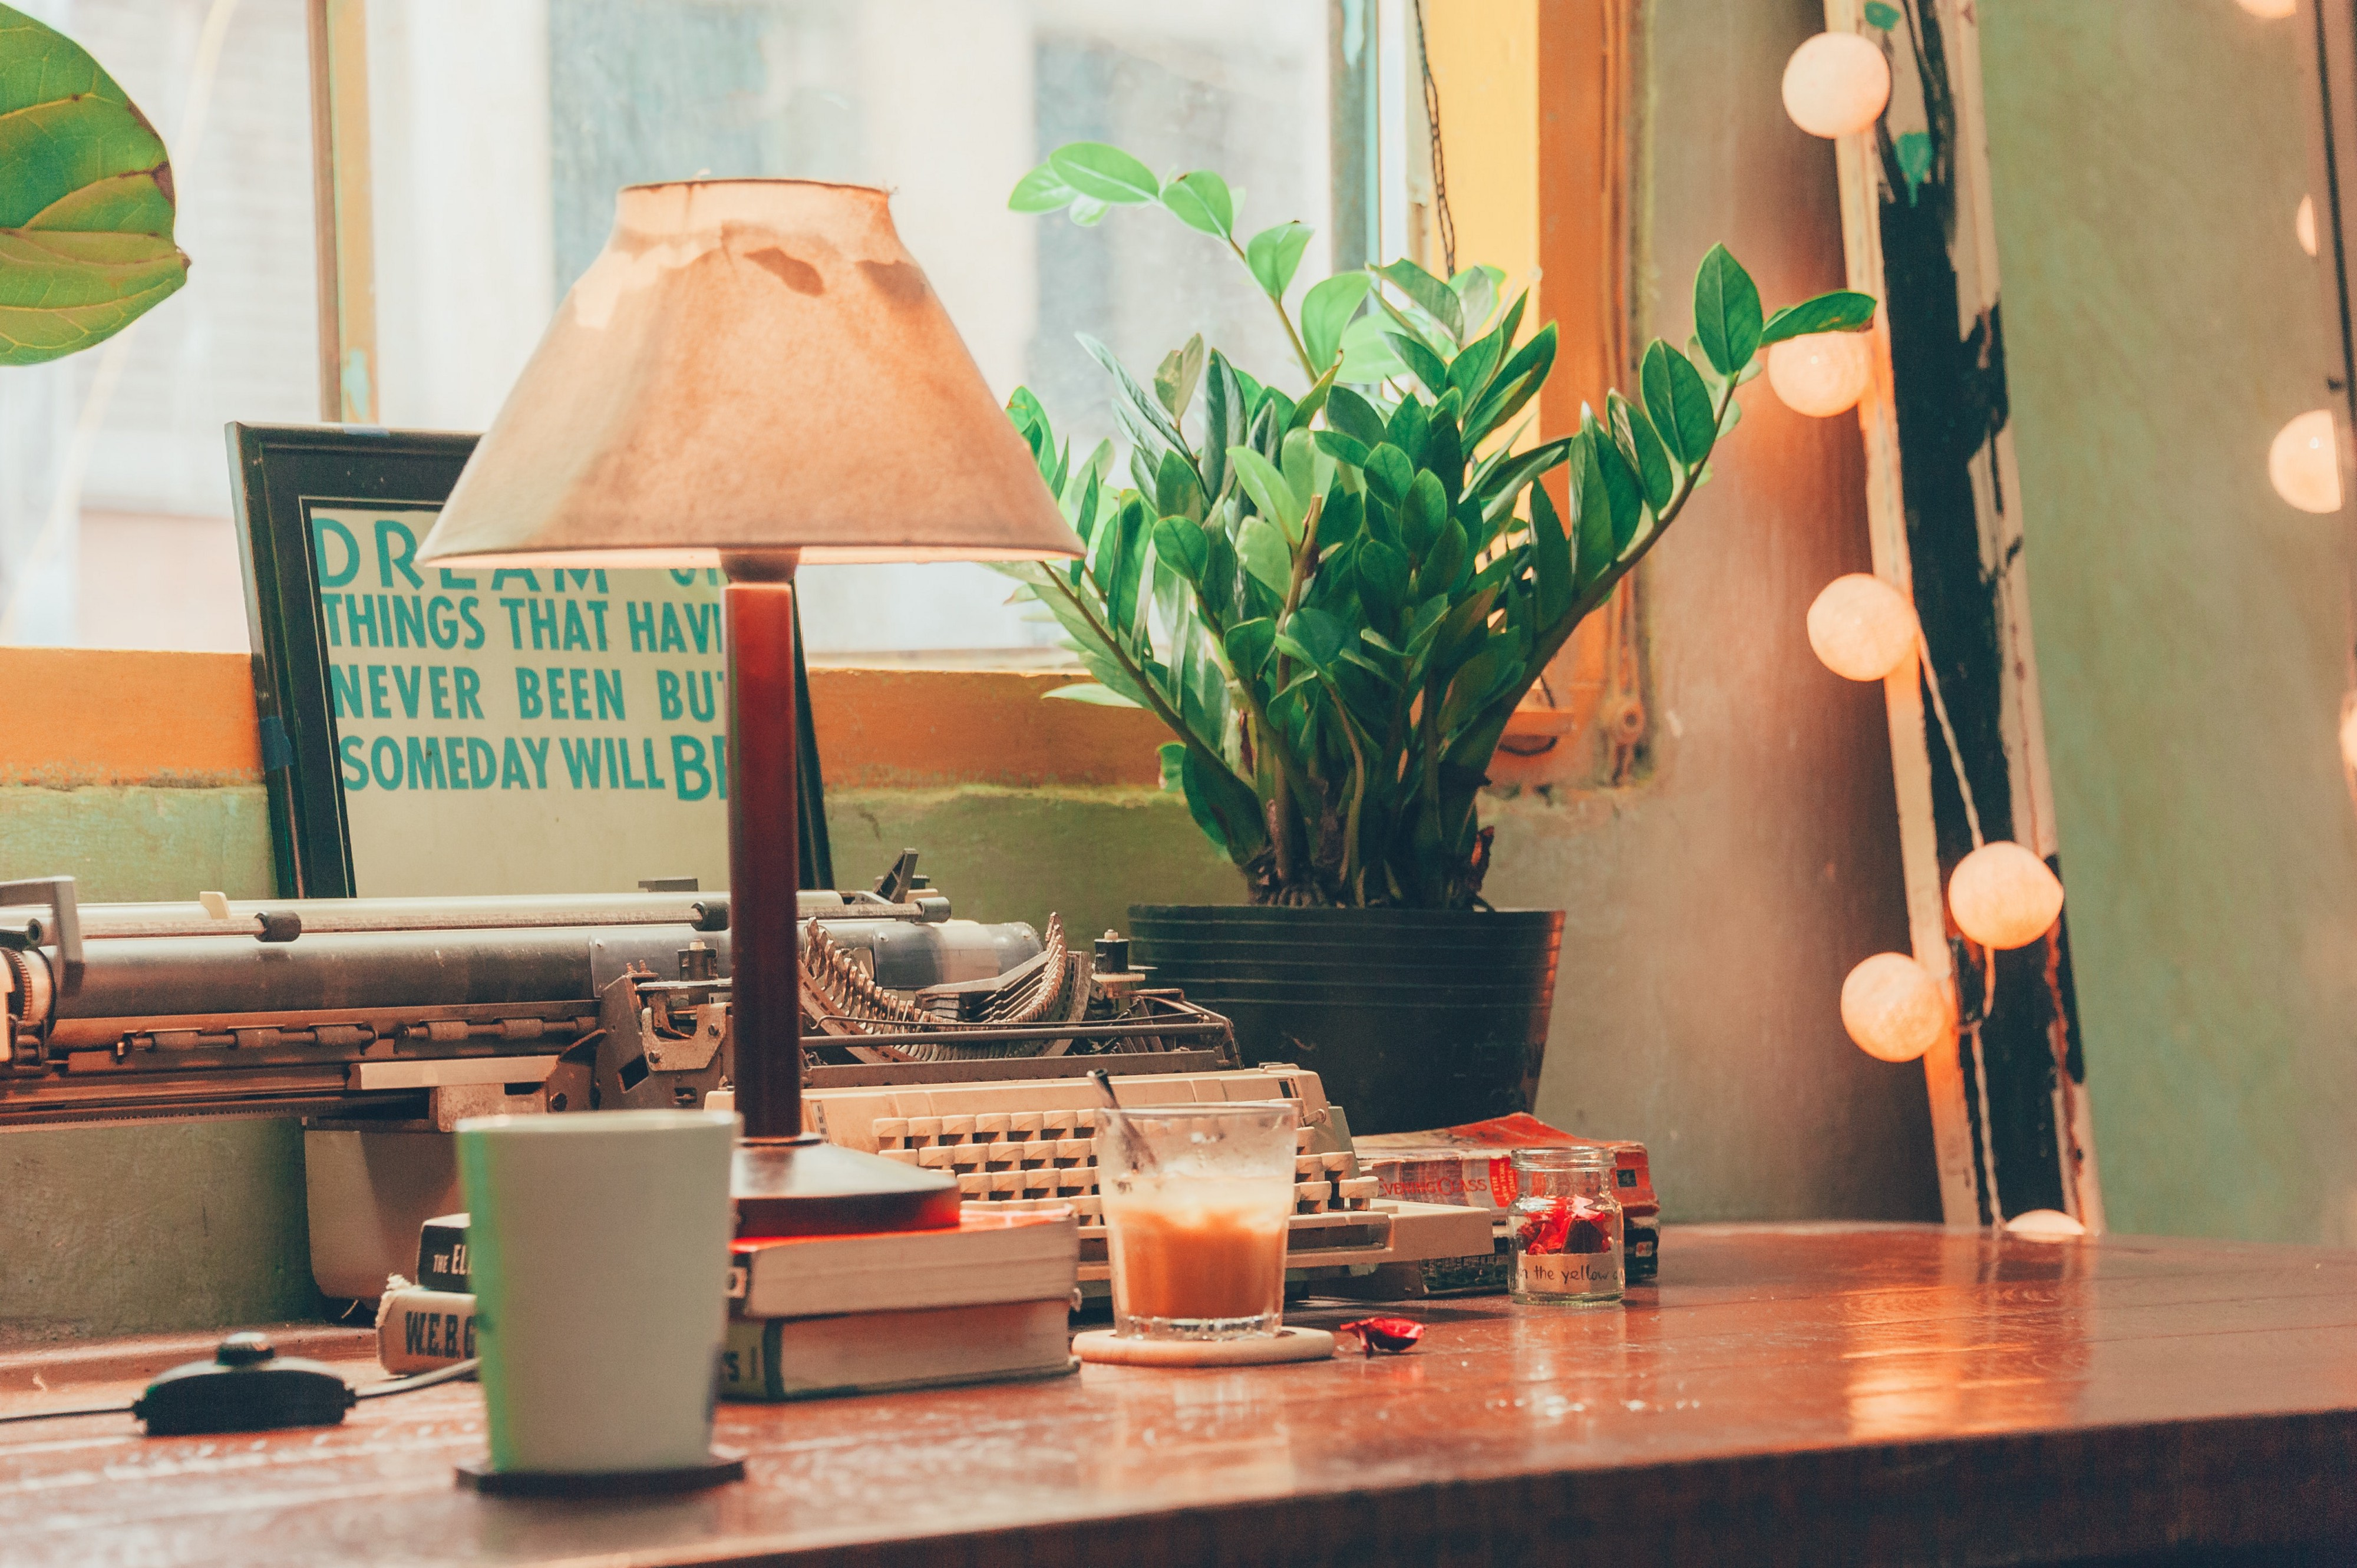 An antique typewriter and a cup of coffee on a wooden desk.